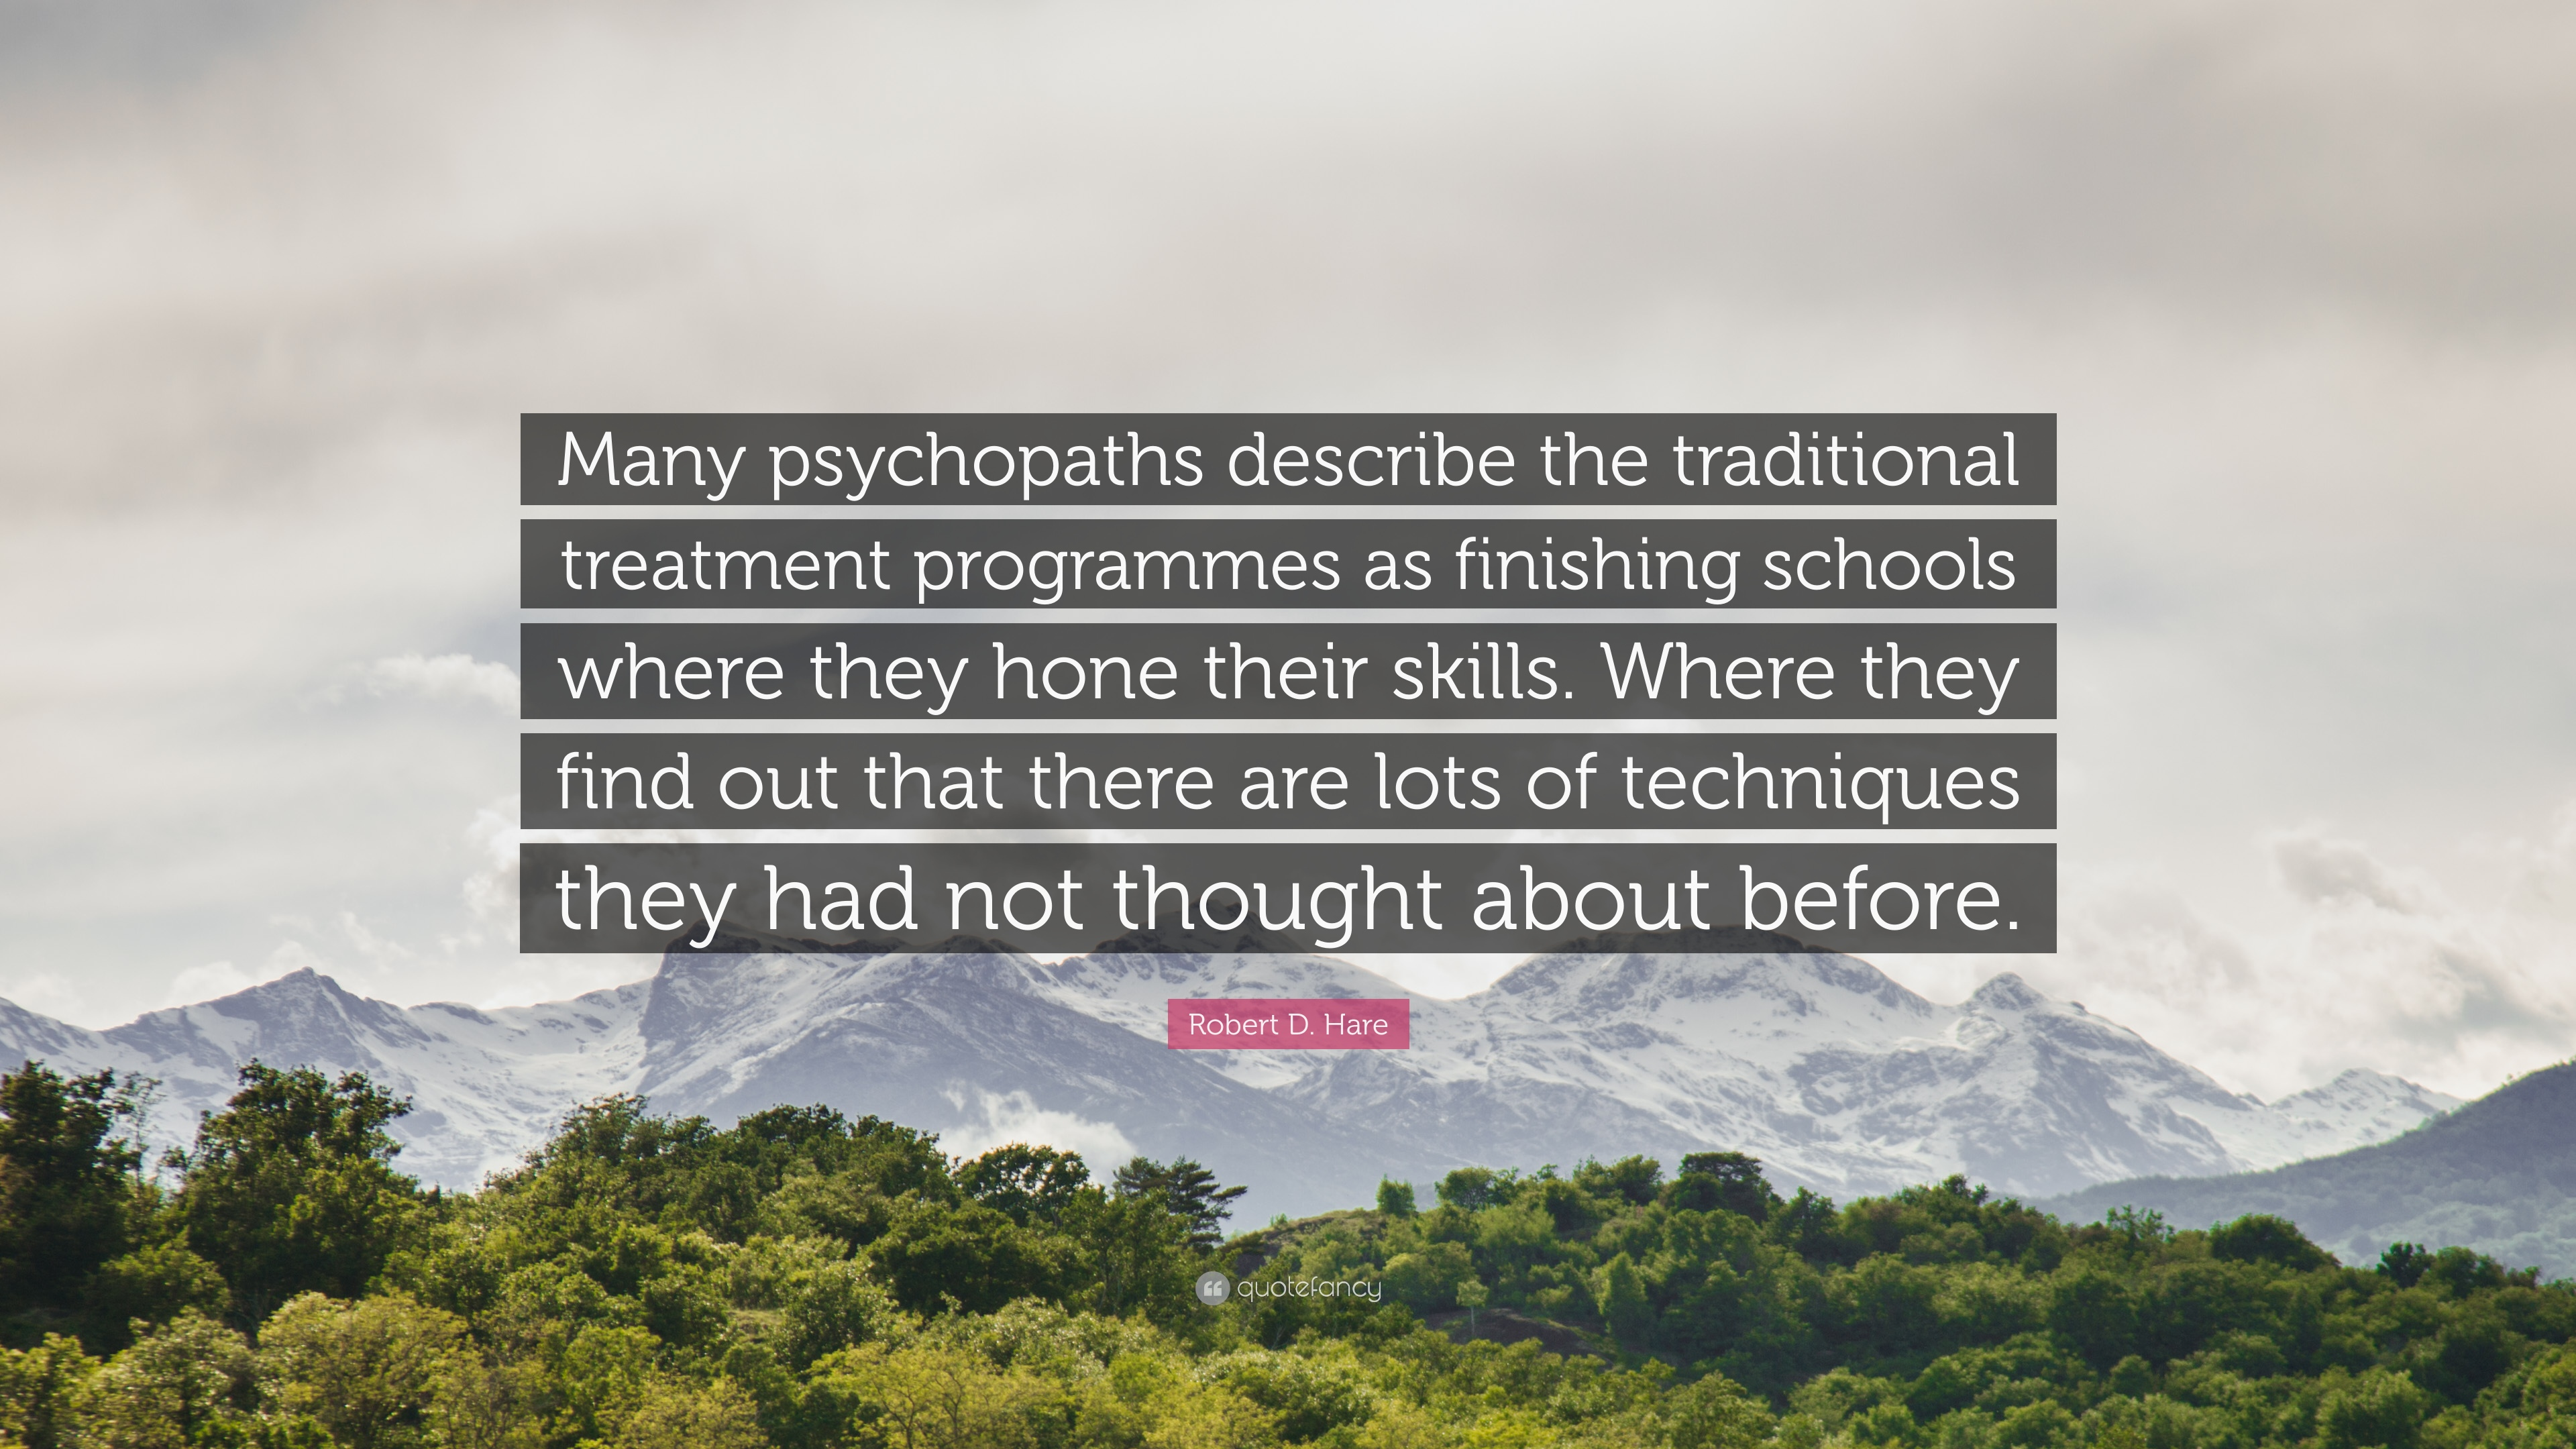 Robert D Hare Quote Many Psychopaths Describe The Traditional Treatment Programmes As Finishing